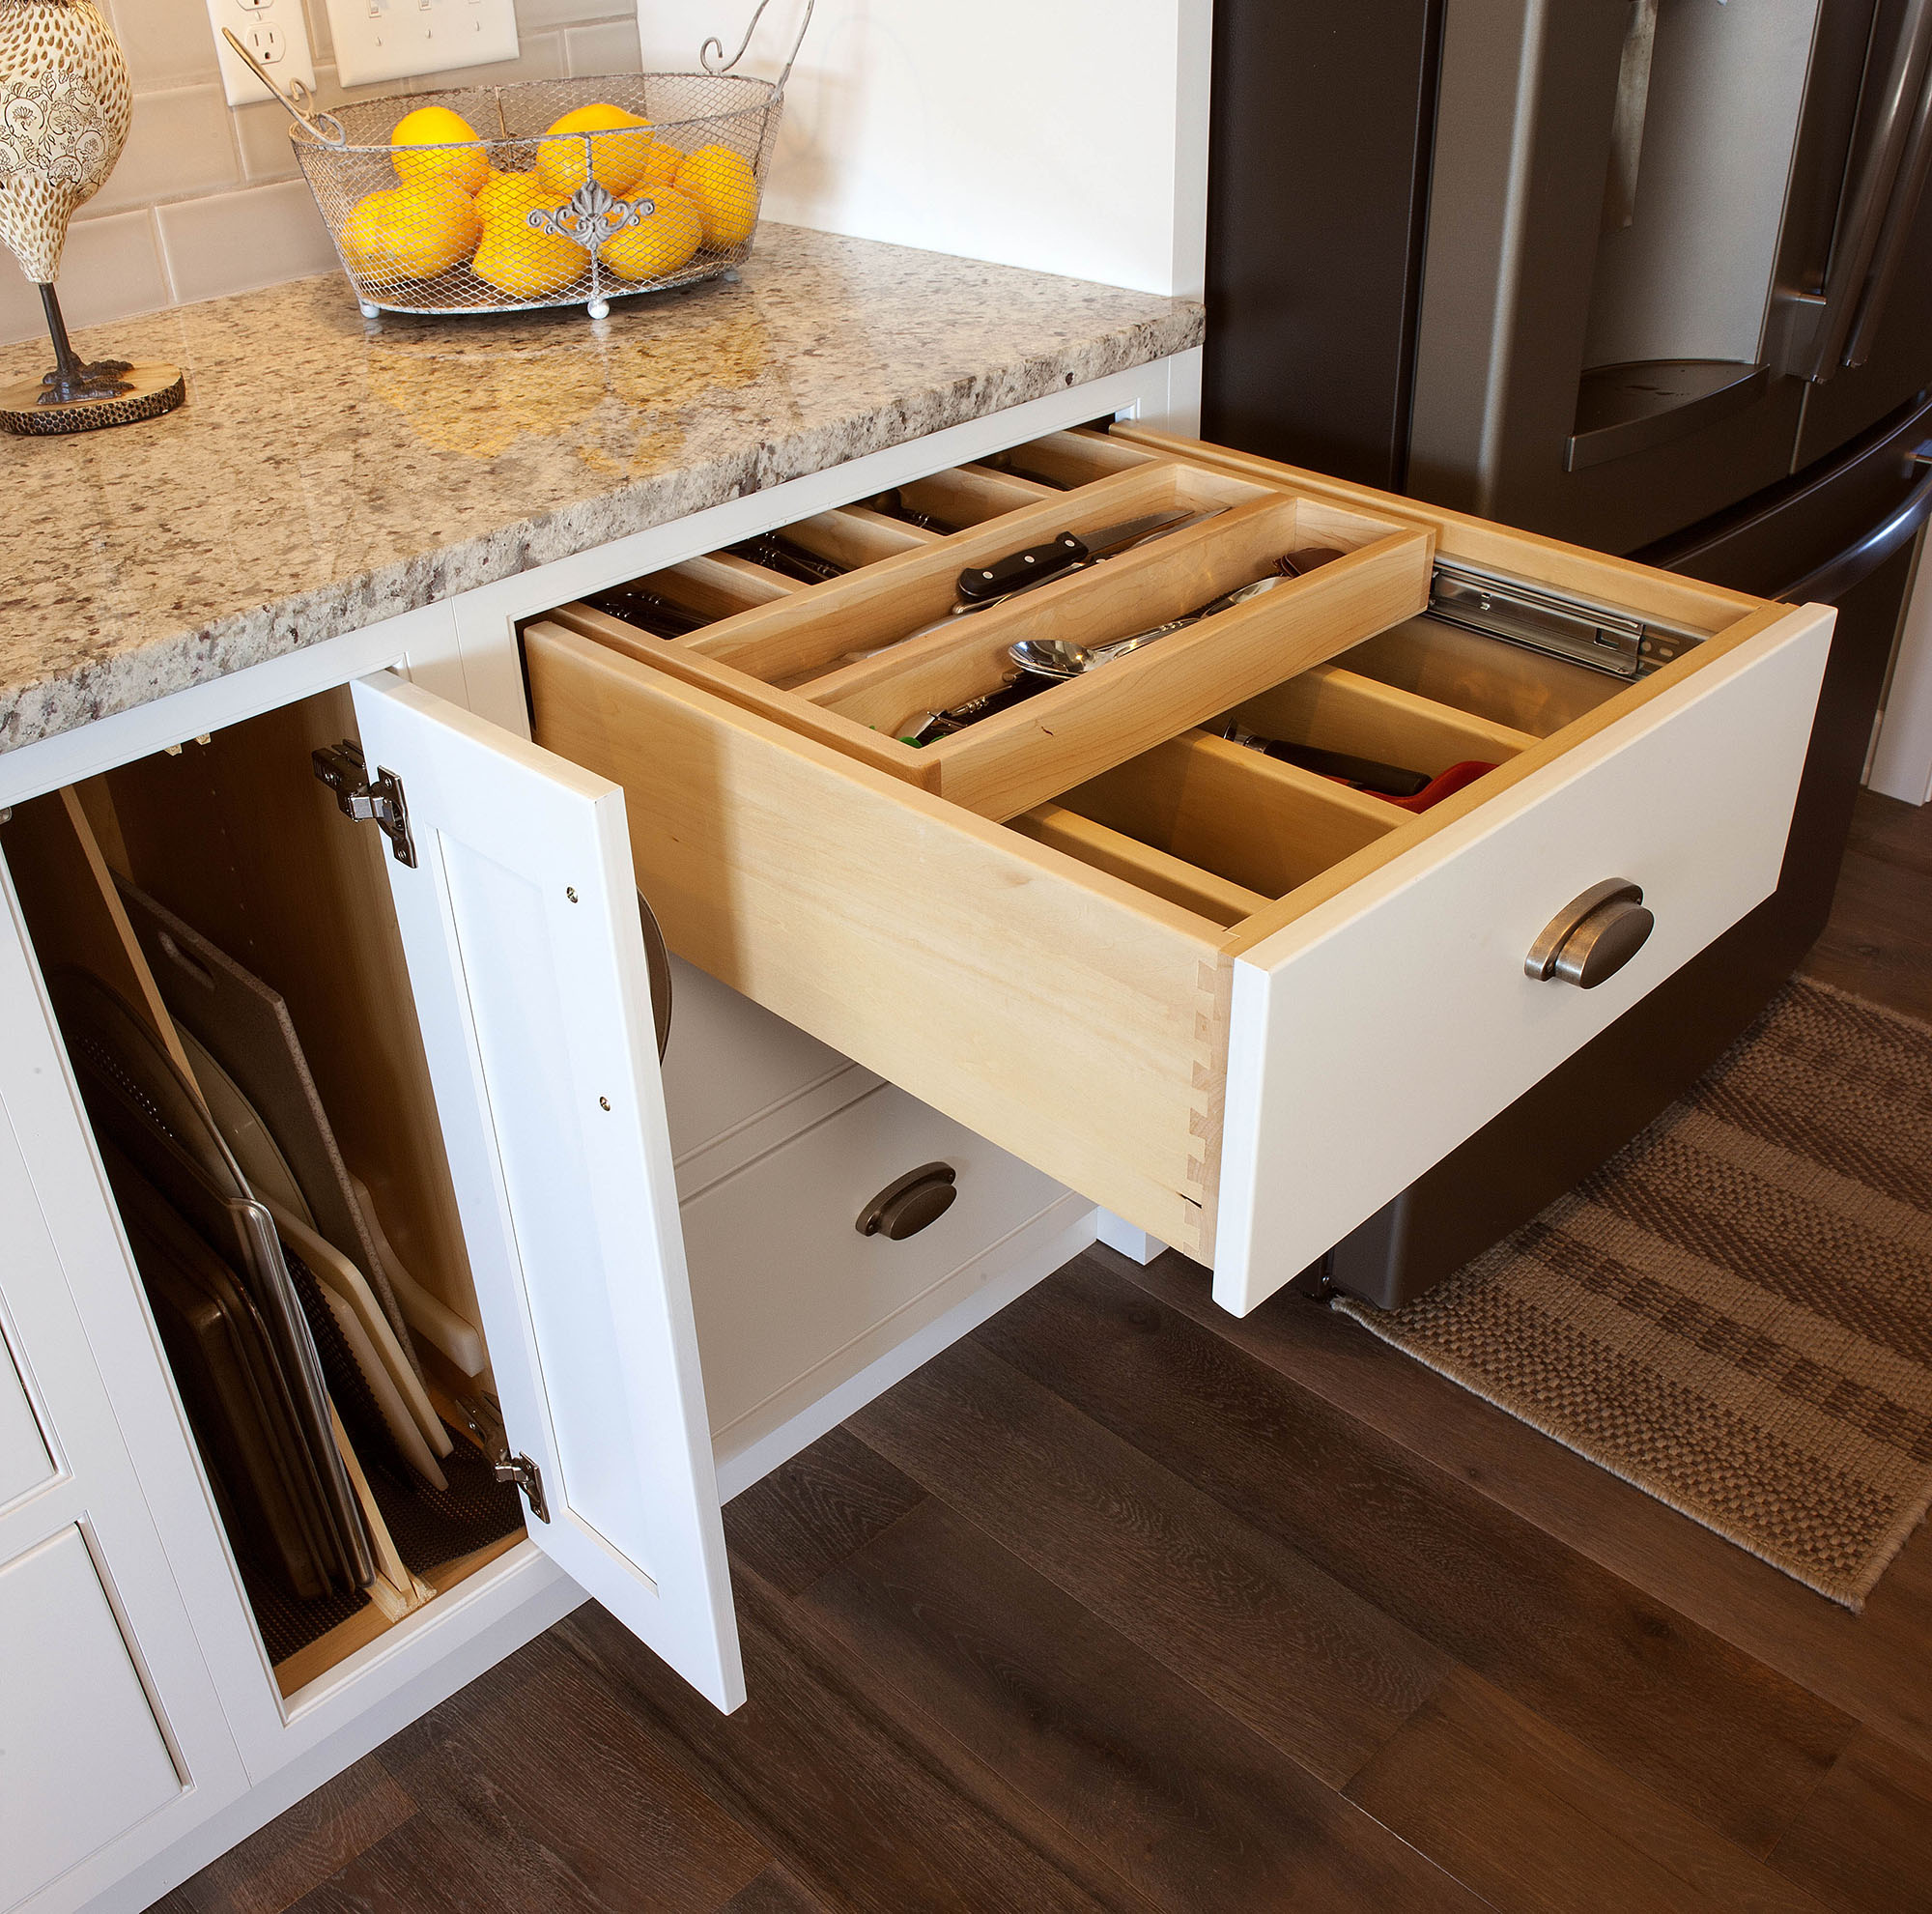 Painted kitchen cabinet with cutlery drawer in White by Showplace Cabinetry